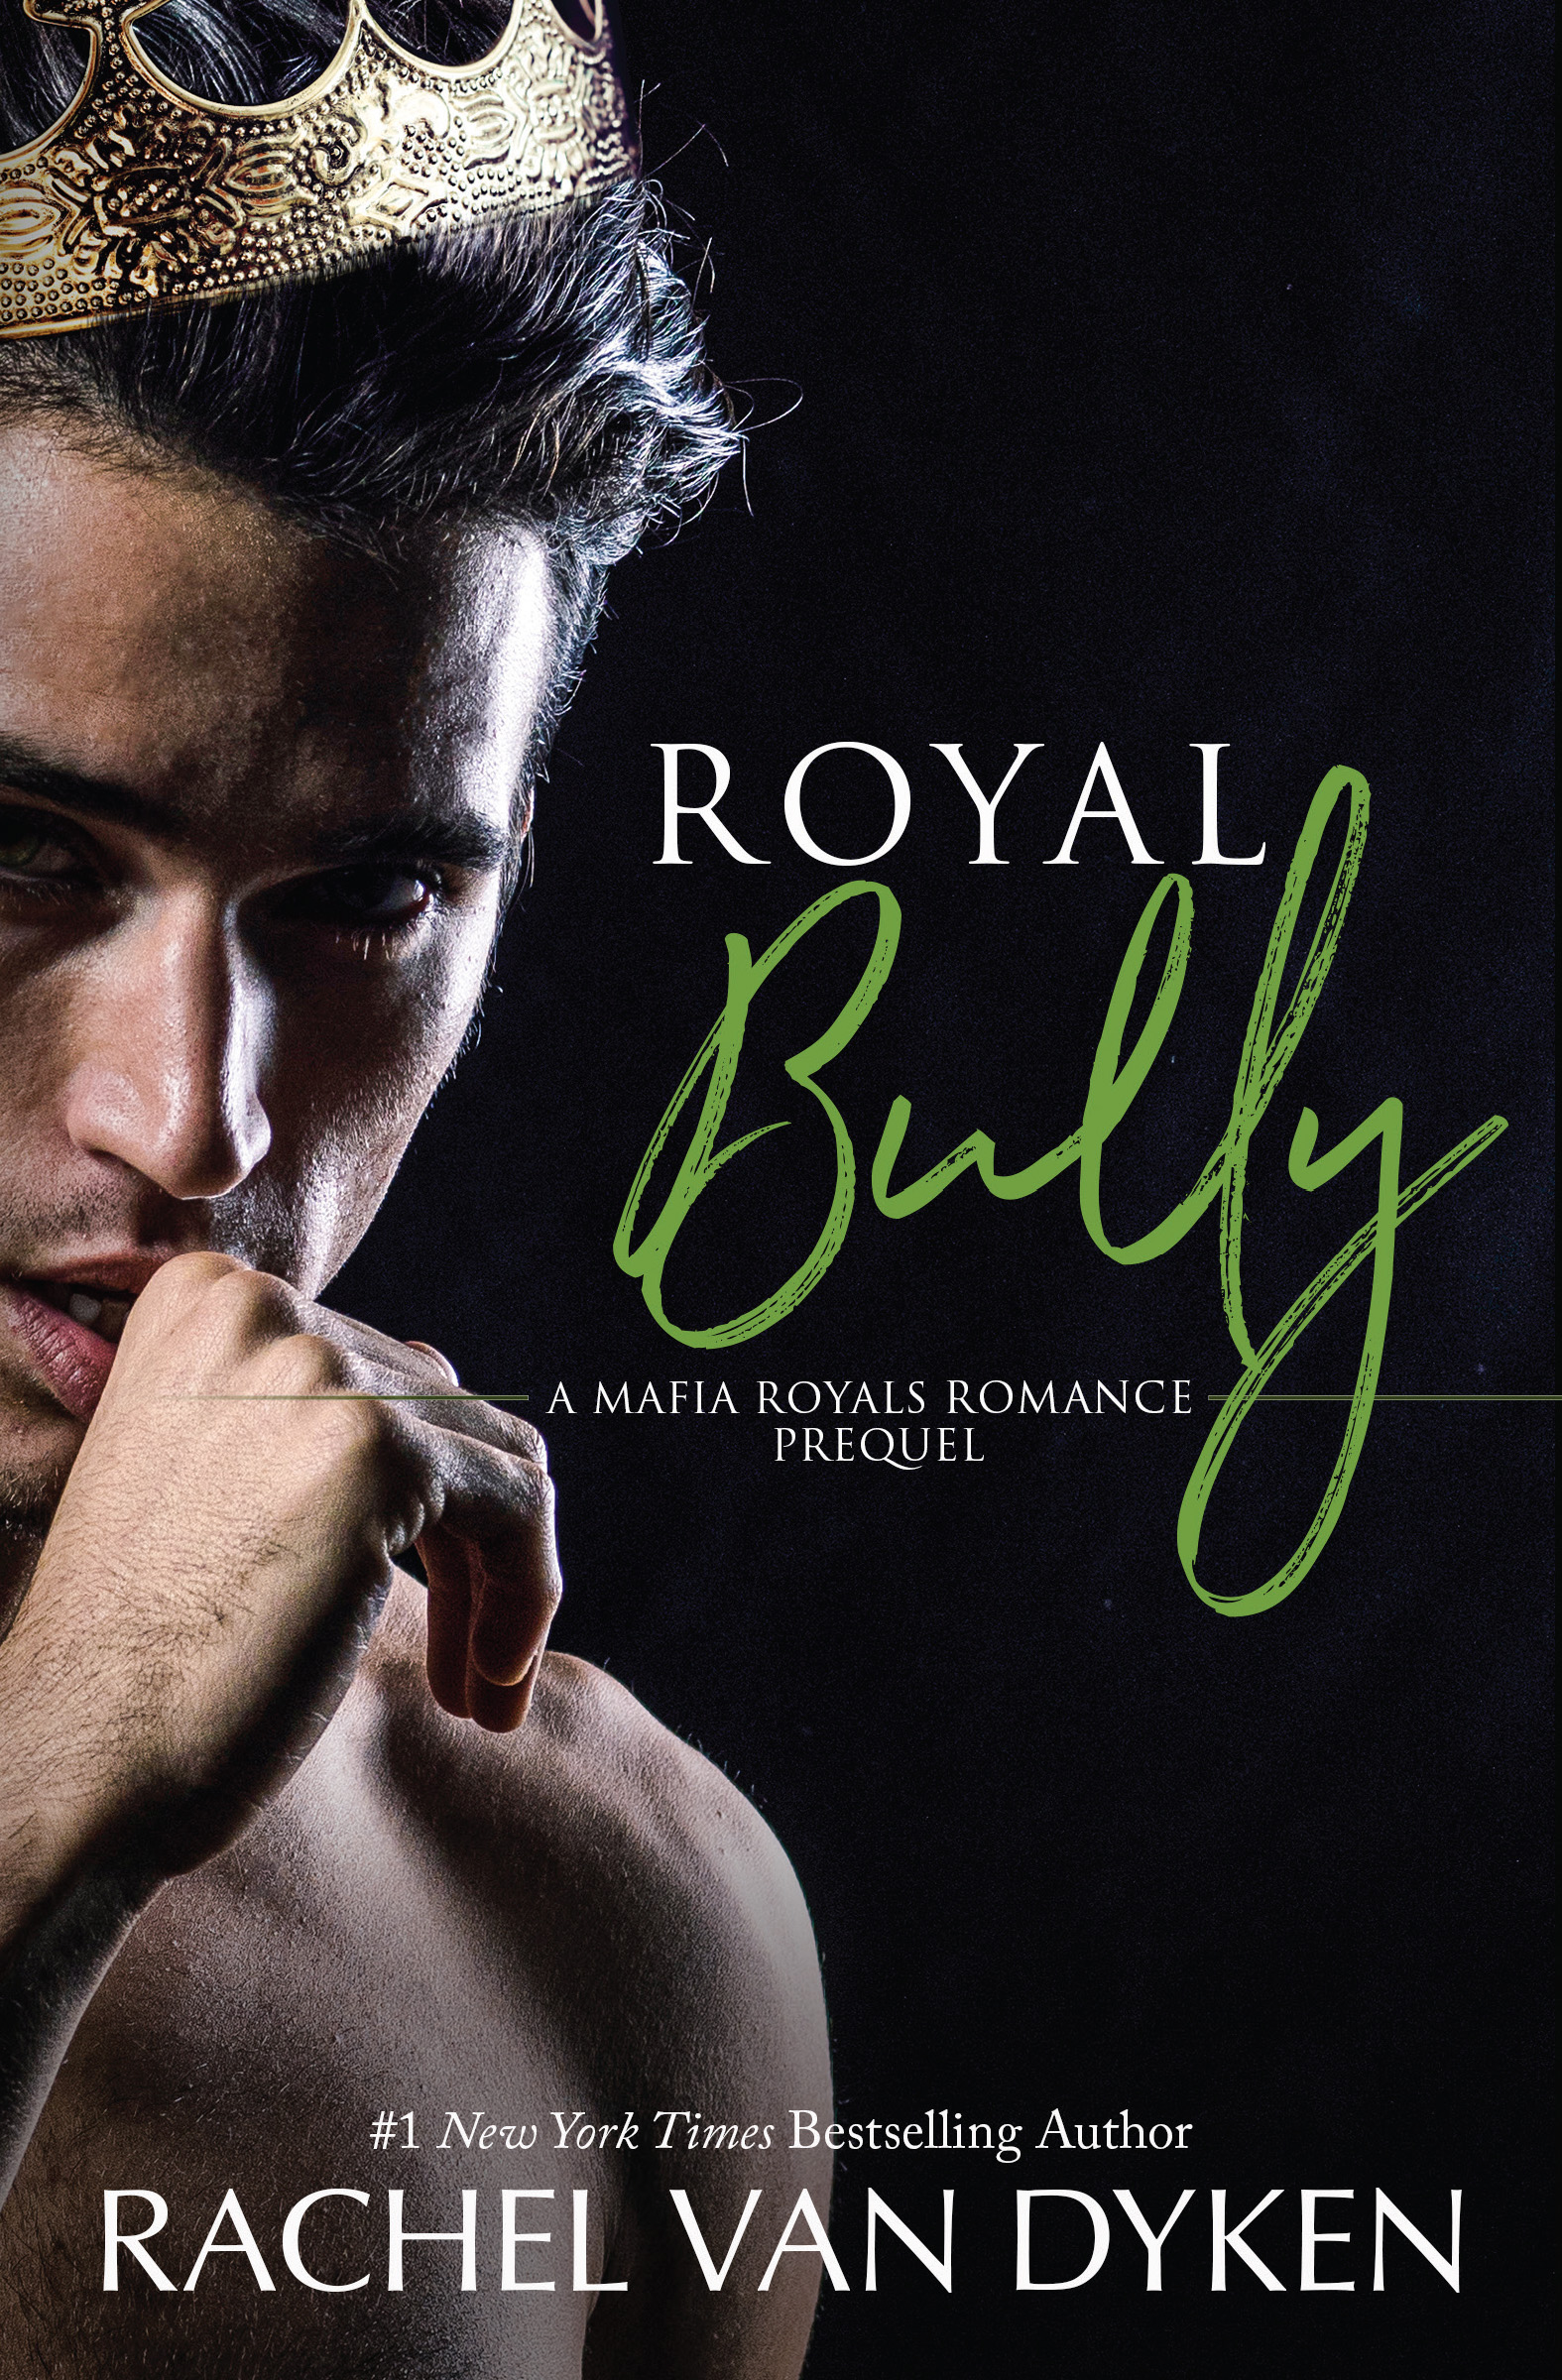 Royal Bully (sst-ccclxxxiv)